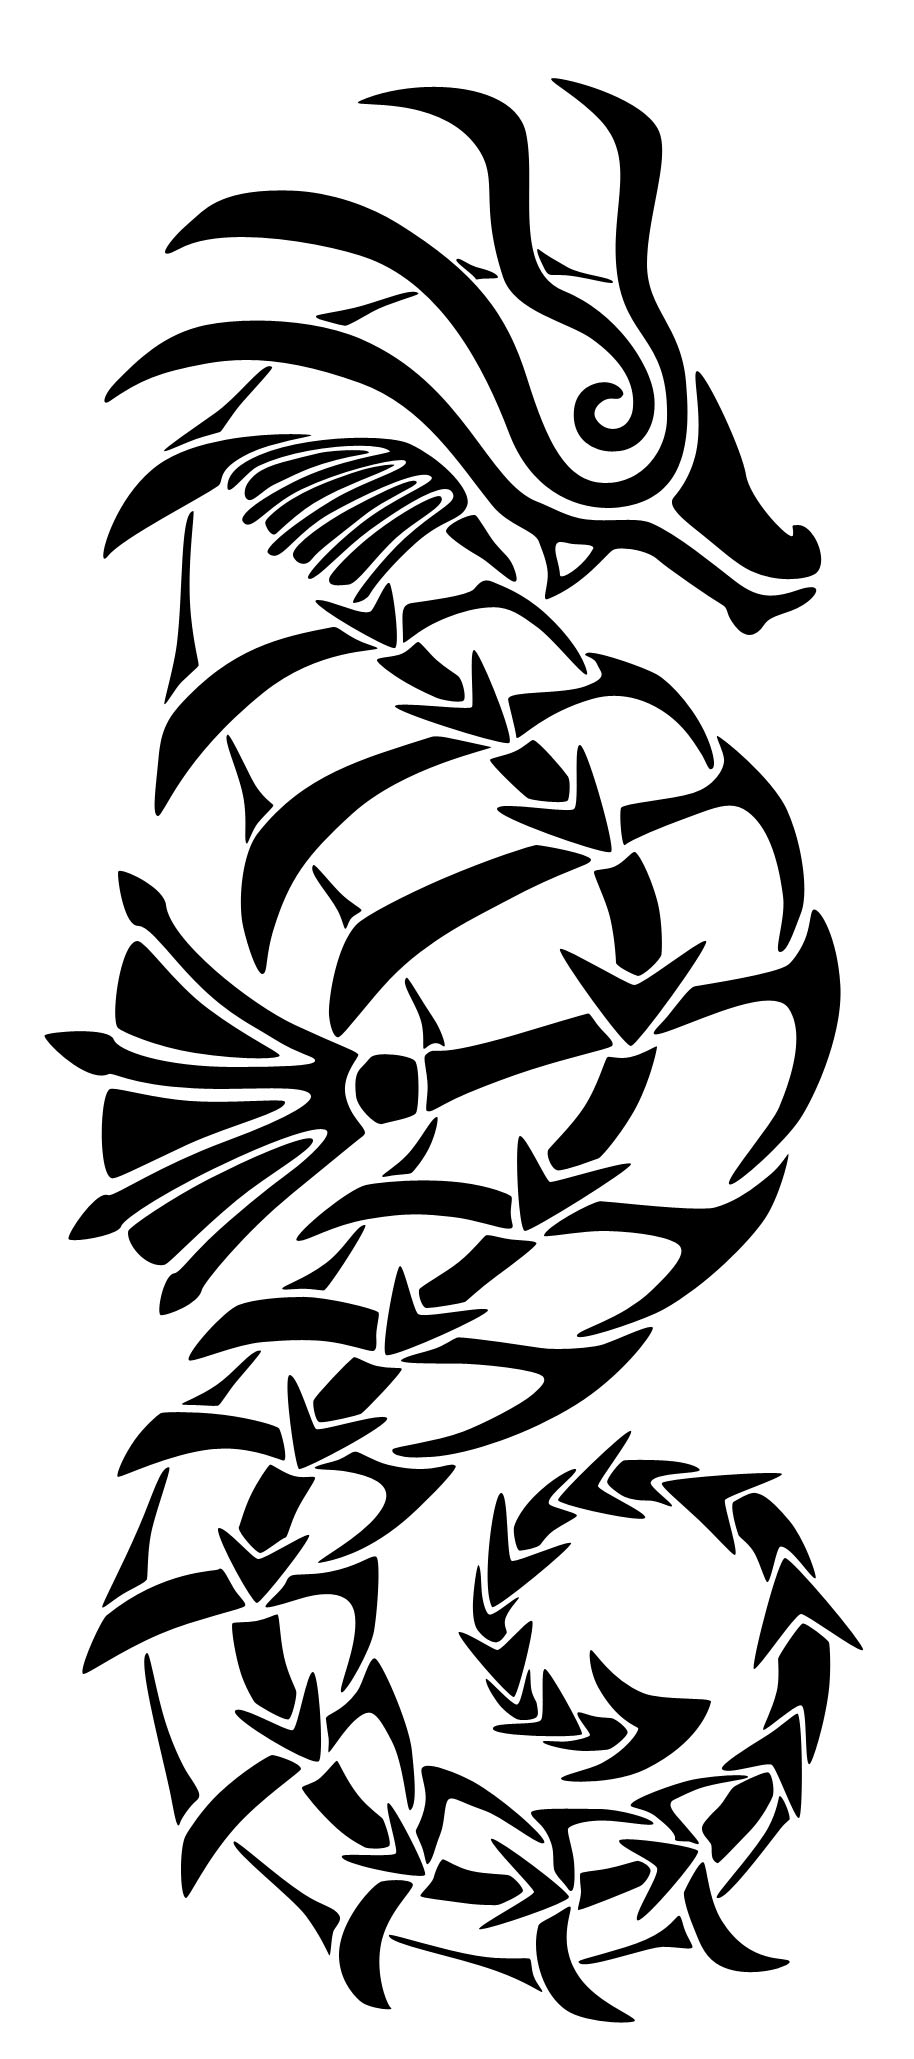 seahorse tattoo meaning tribal tattoo seahorse by nerds2x2ever on deviantart. Black Bedroom Furniture Sets. Home Design Ideas